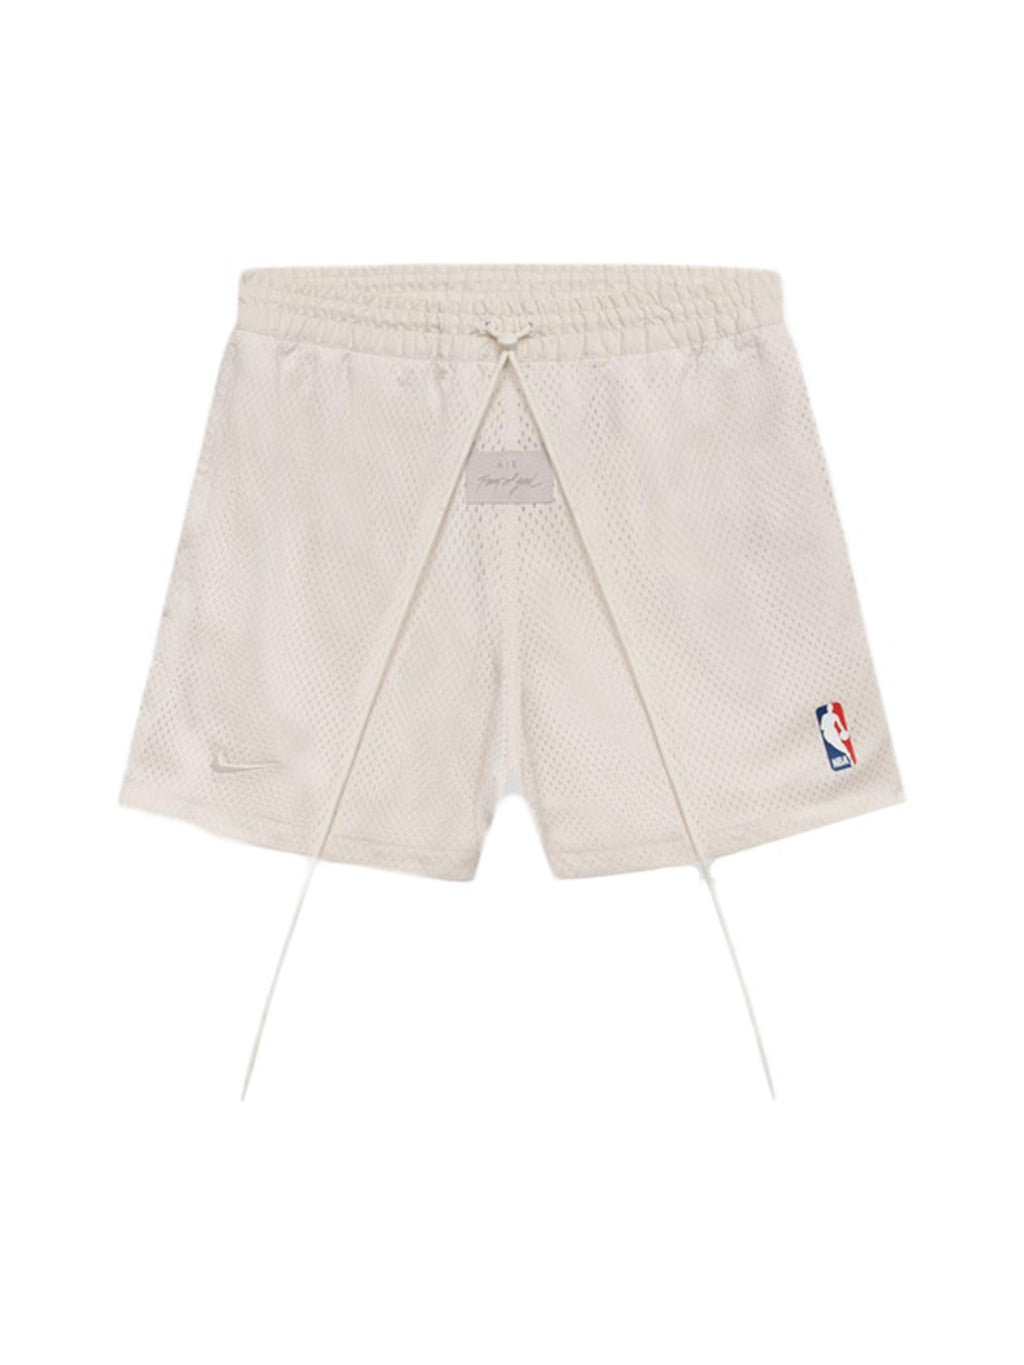 FEAR OF GOD x Nike Basketball Shorts Cream - PRIOR